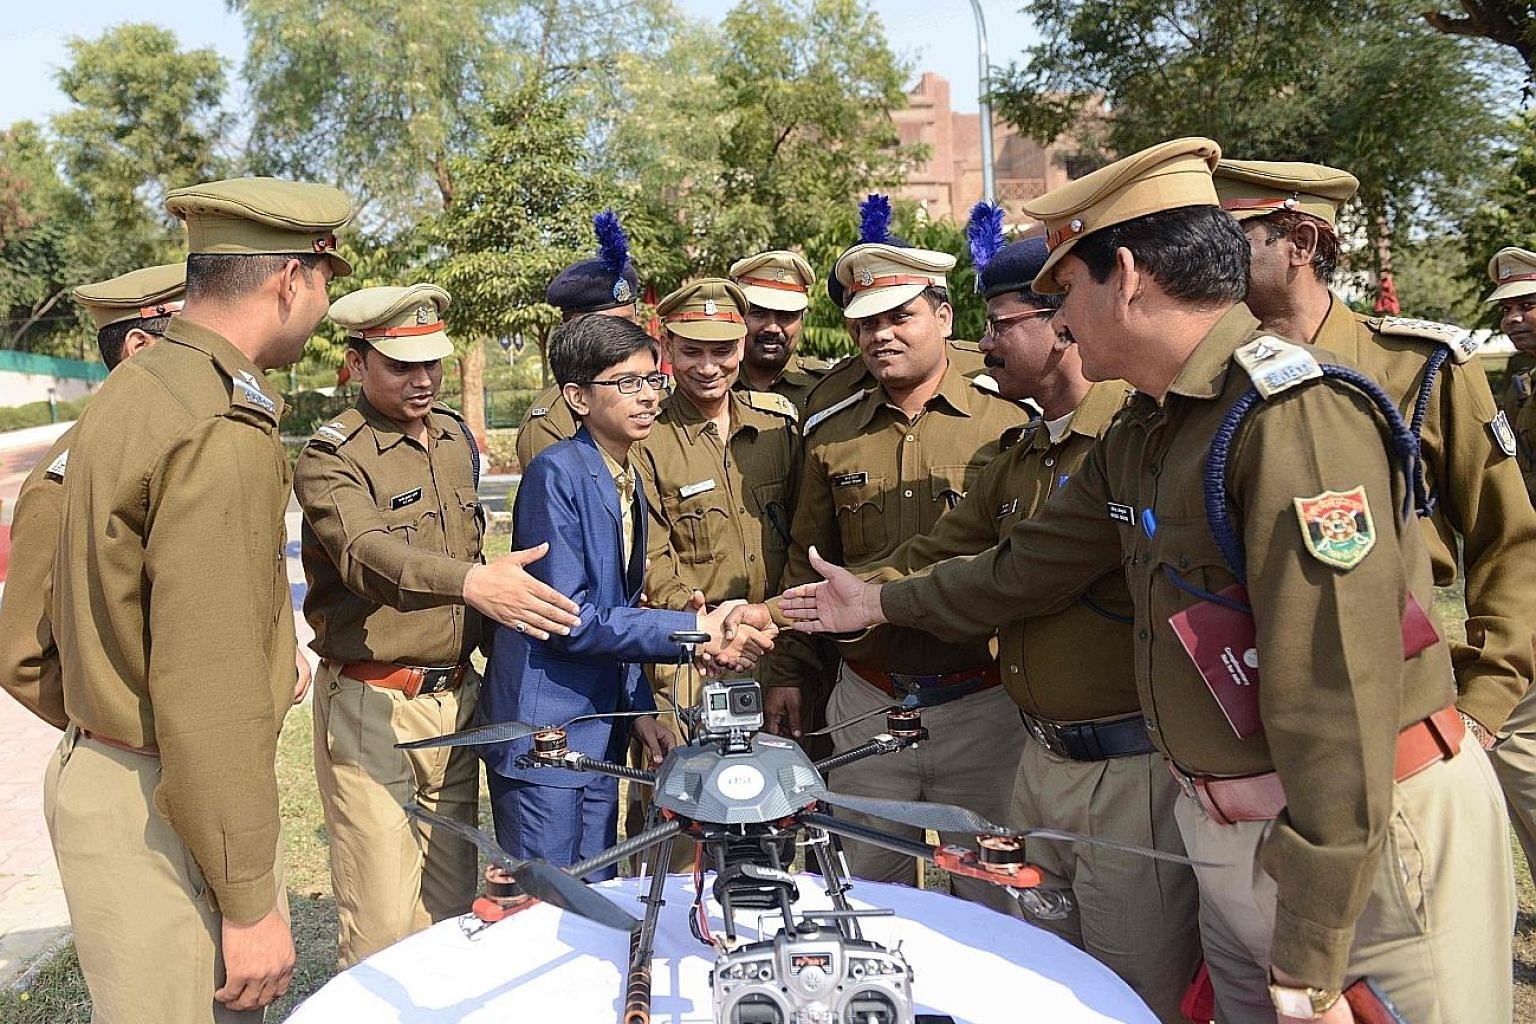 Indian student Harshwardhan Zala meeting Central Reserve Police Force officers to show them a drone he designed. The meeting took place at the Rapid Action Force Camp on the outskirts of Ahmedabad on Sunday. Zala began working on a prototype of the d